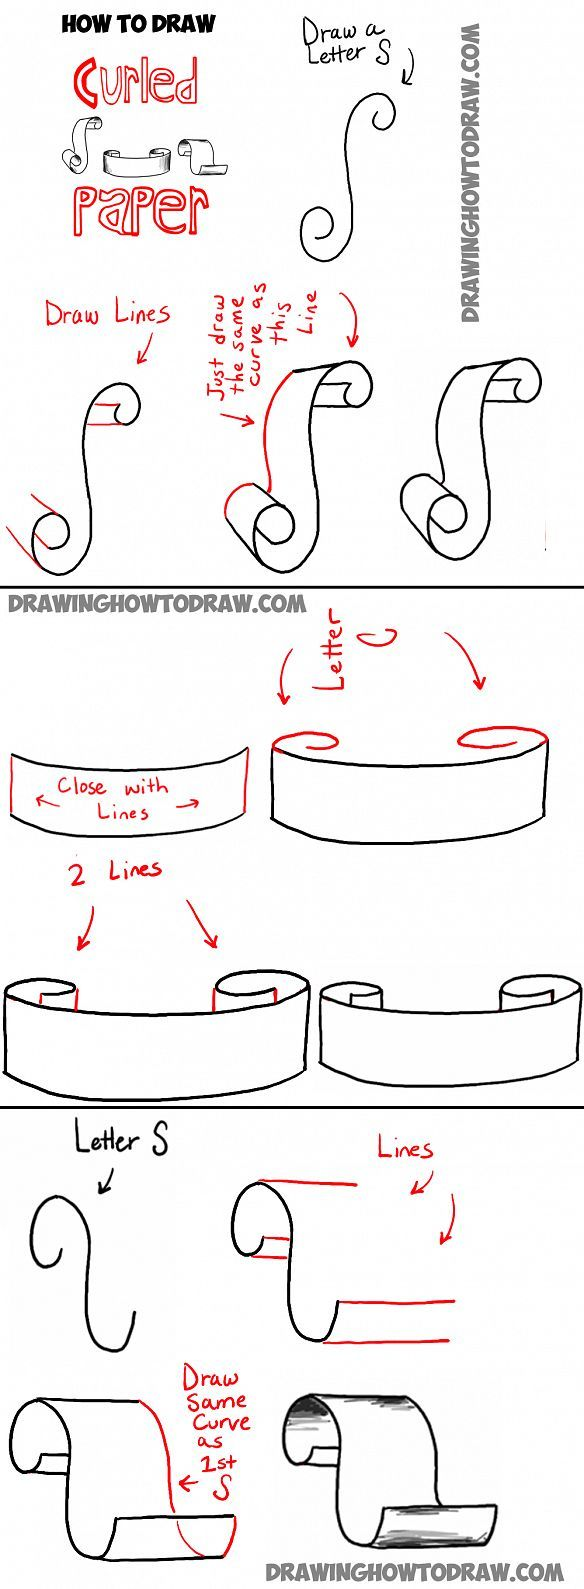 how to draw curled paper - like scrolls